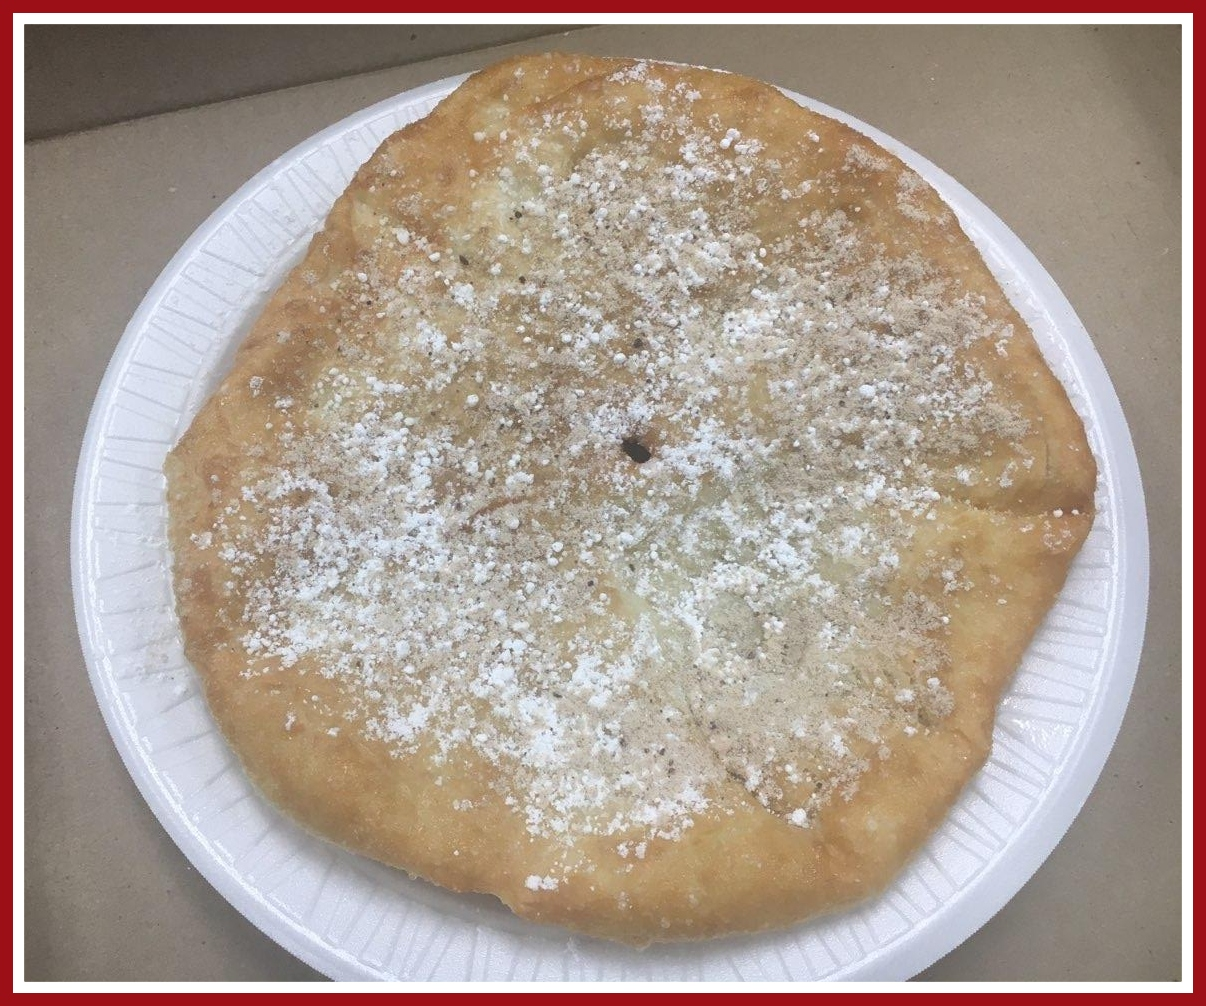 Lisa's Fried Dough Old Orchard Beach